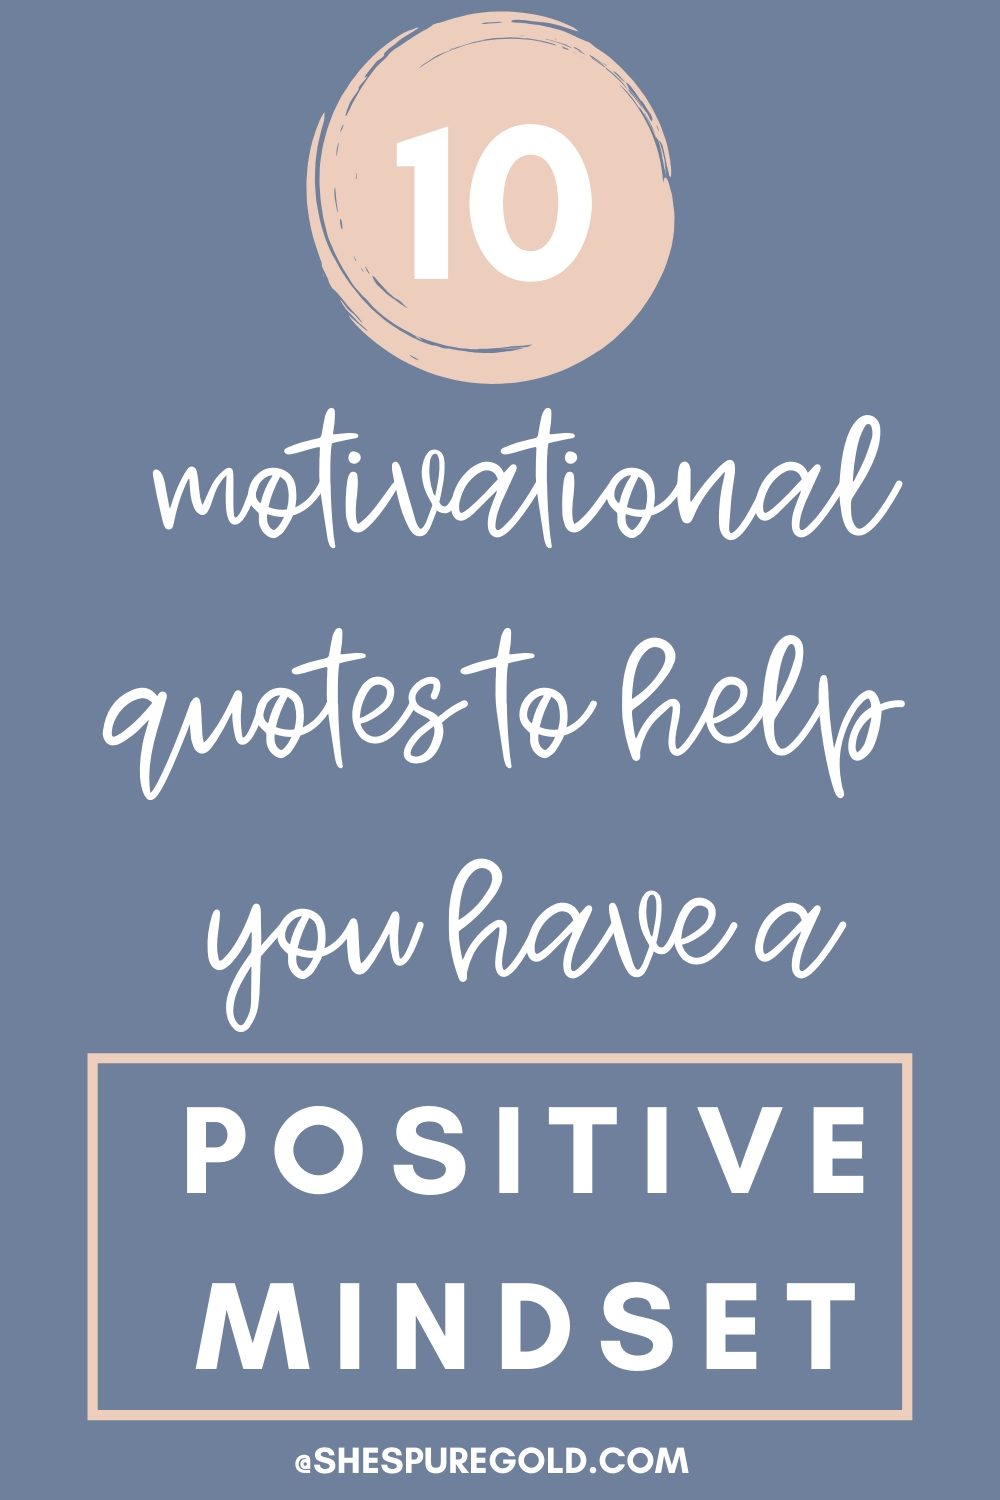 10 motivational quotes to help you have a positive mindset